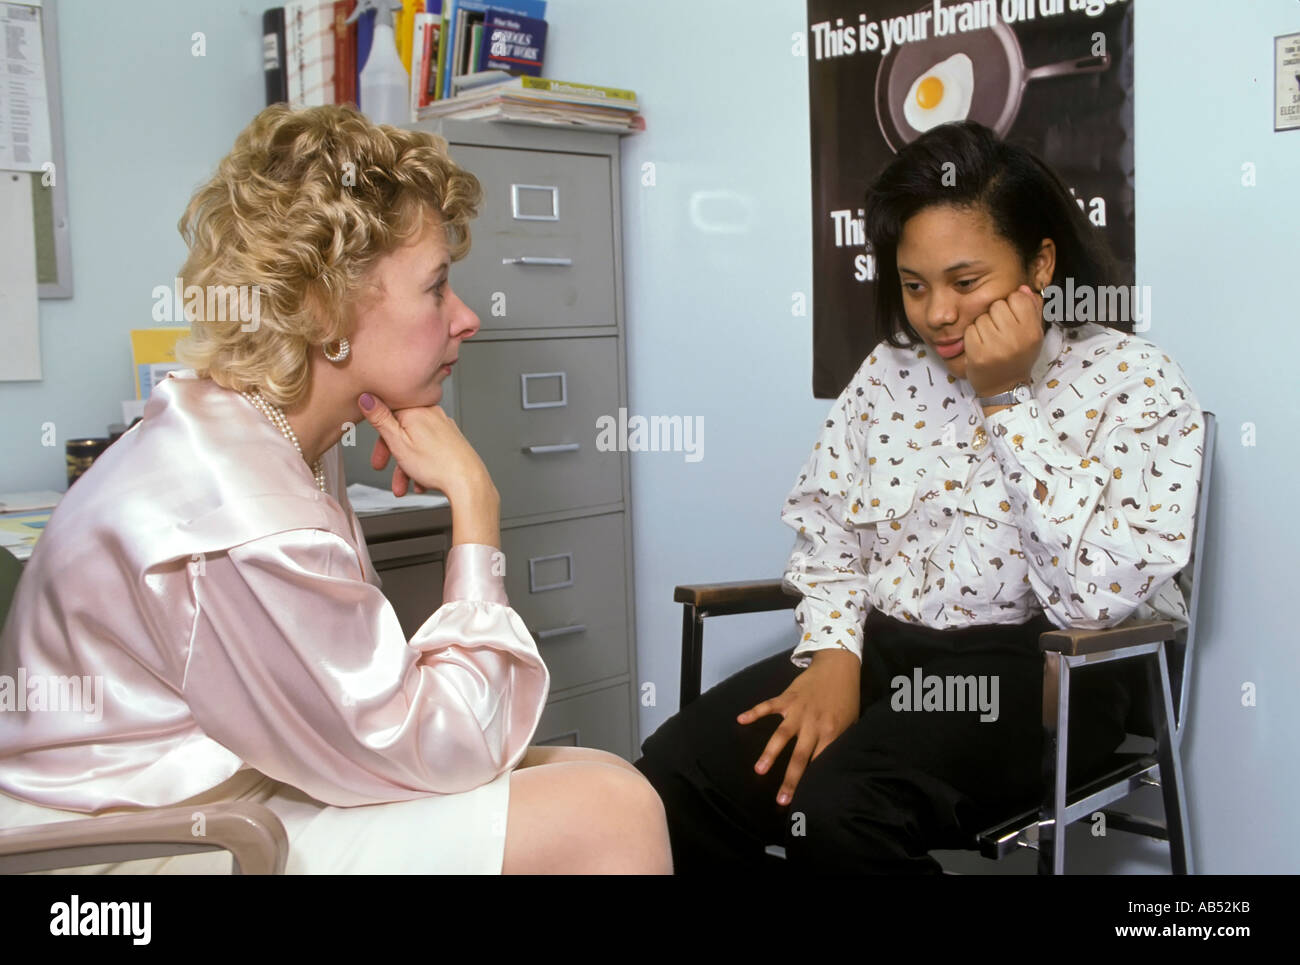 Middle School Guidance Counselor Meets With A Teen Female Student In